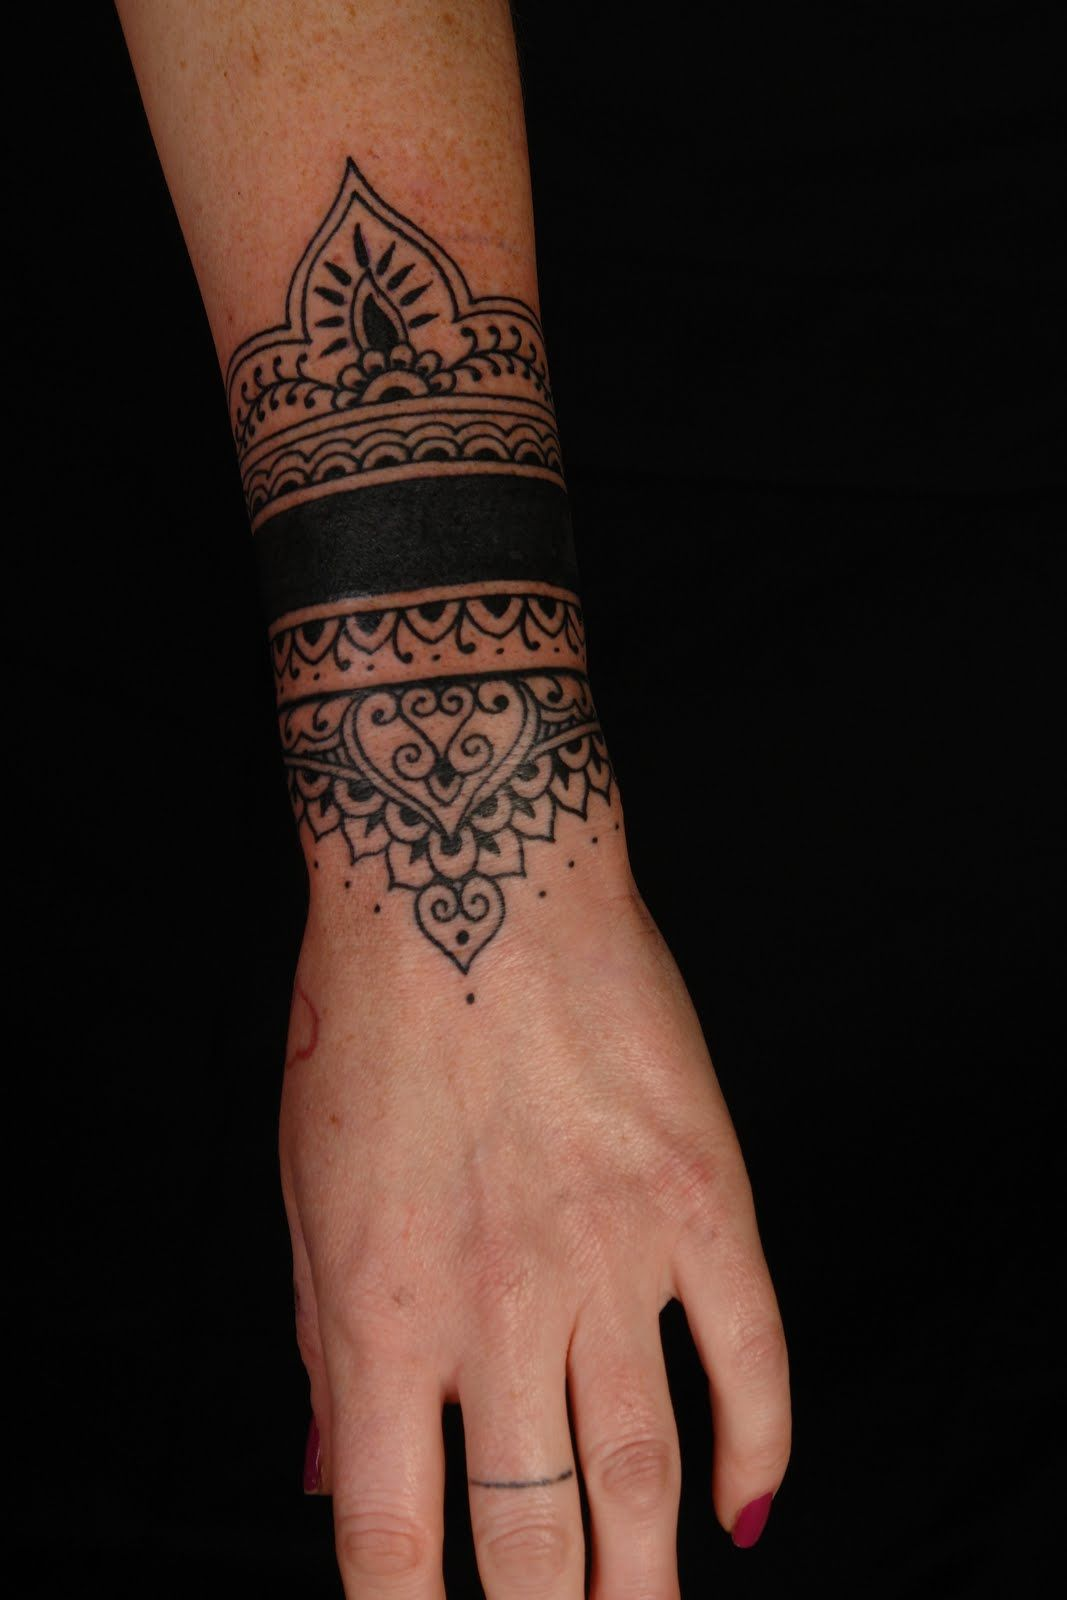 Wrist Tattoo Designs For Women Wrist Tattoo Ideas Tattoos